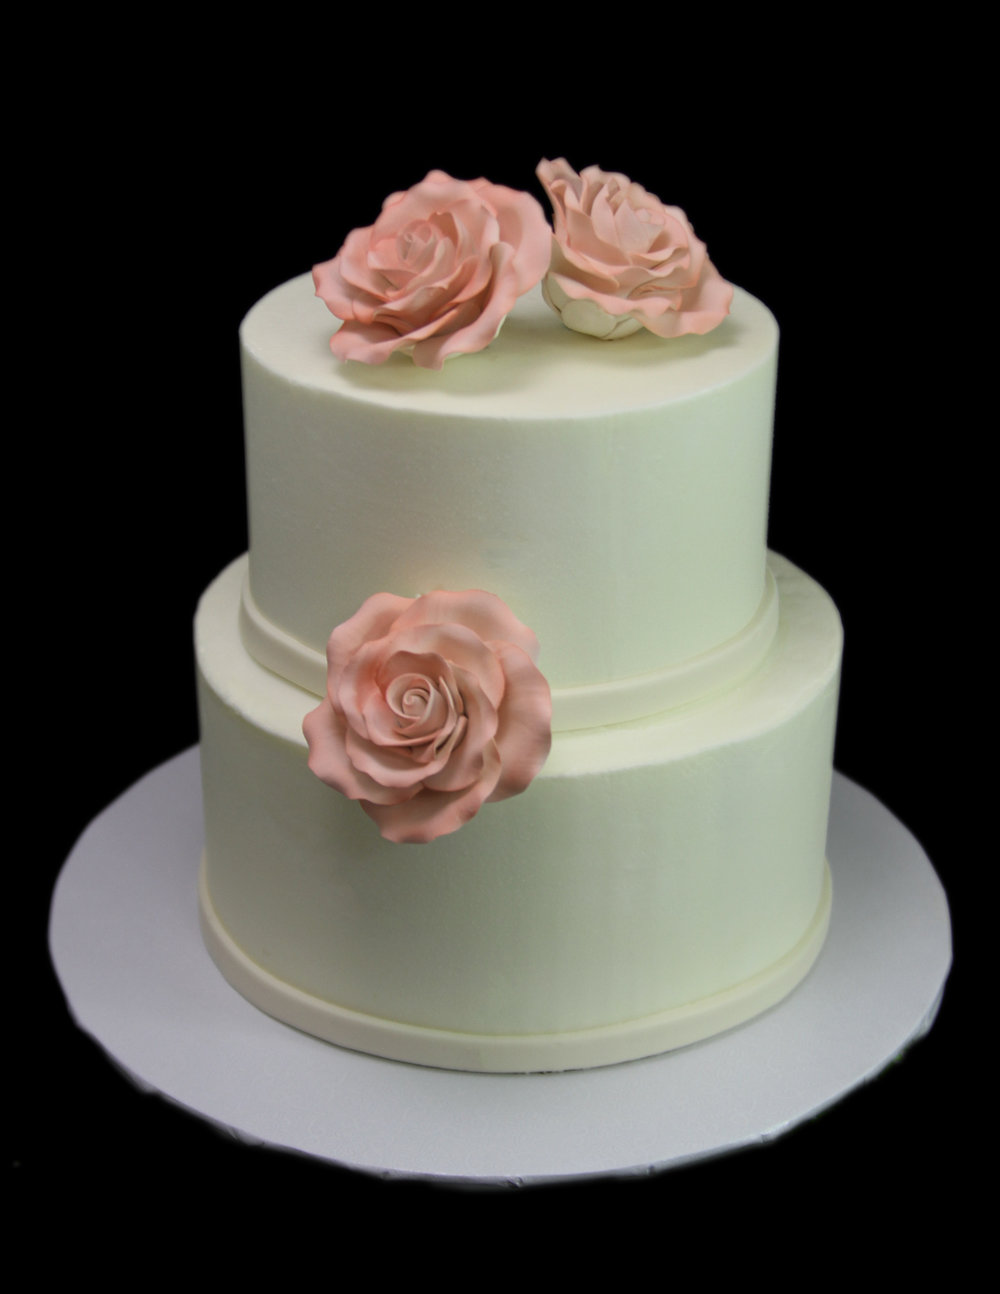 Roses Small Wedding Cake.jpg